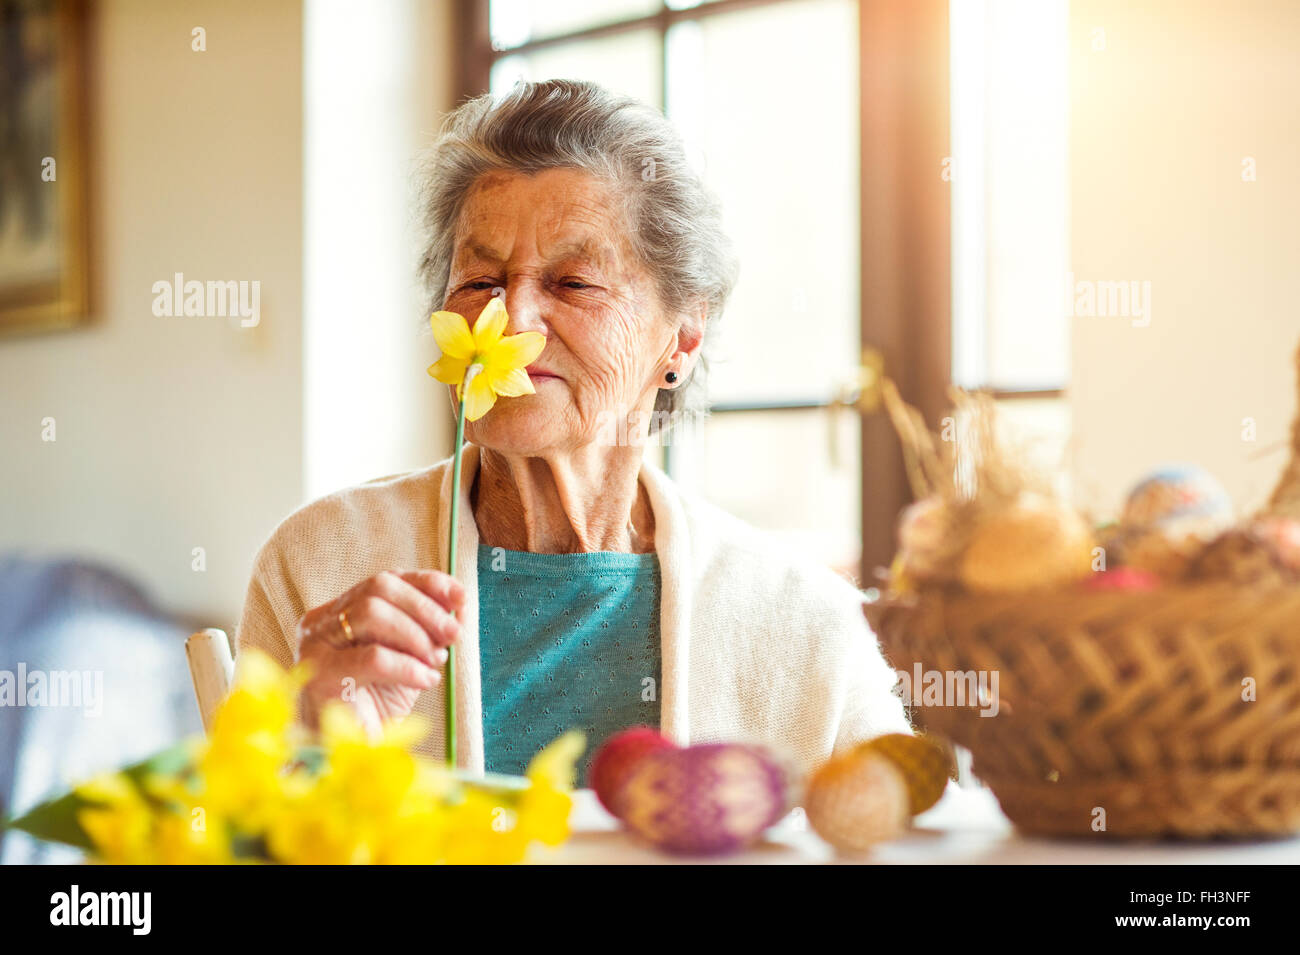 Senior woman by the window smelling yellow daffodil, Easter - Stock Image